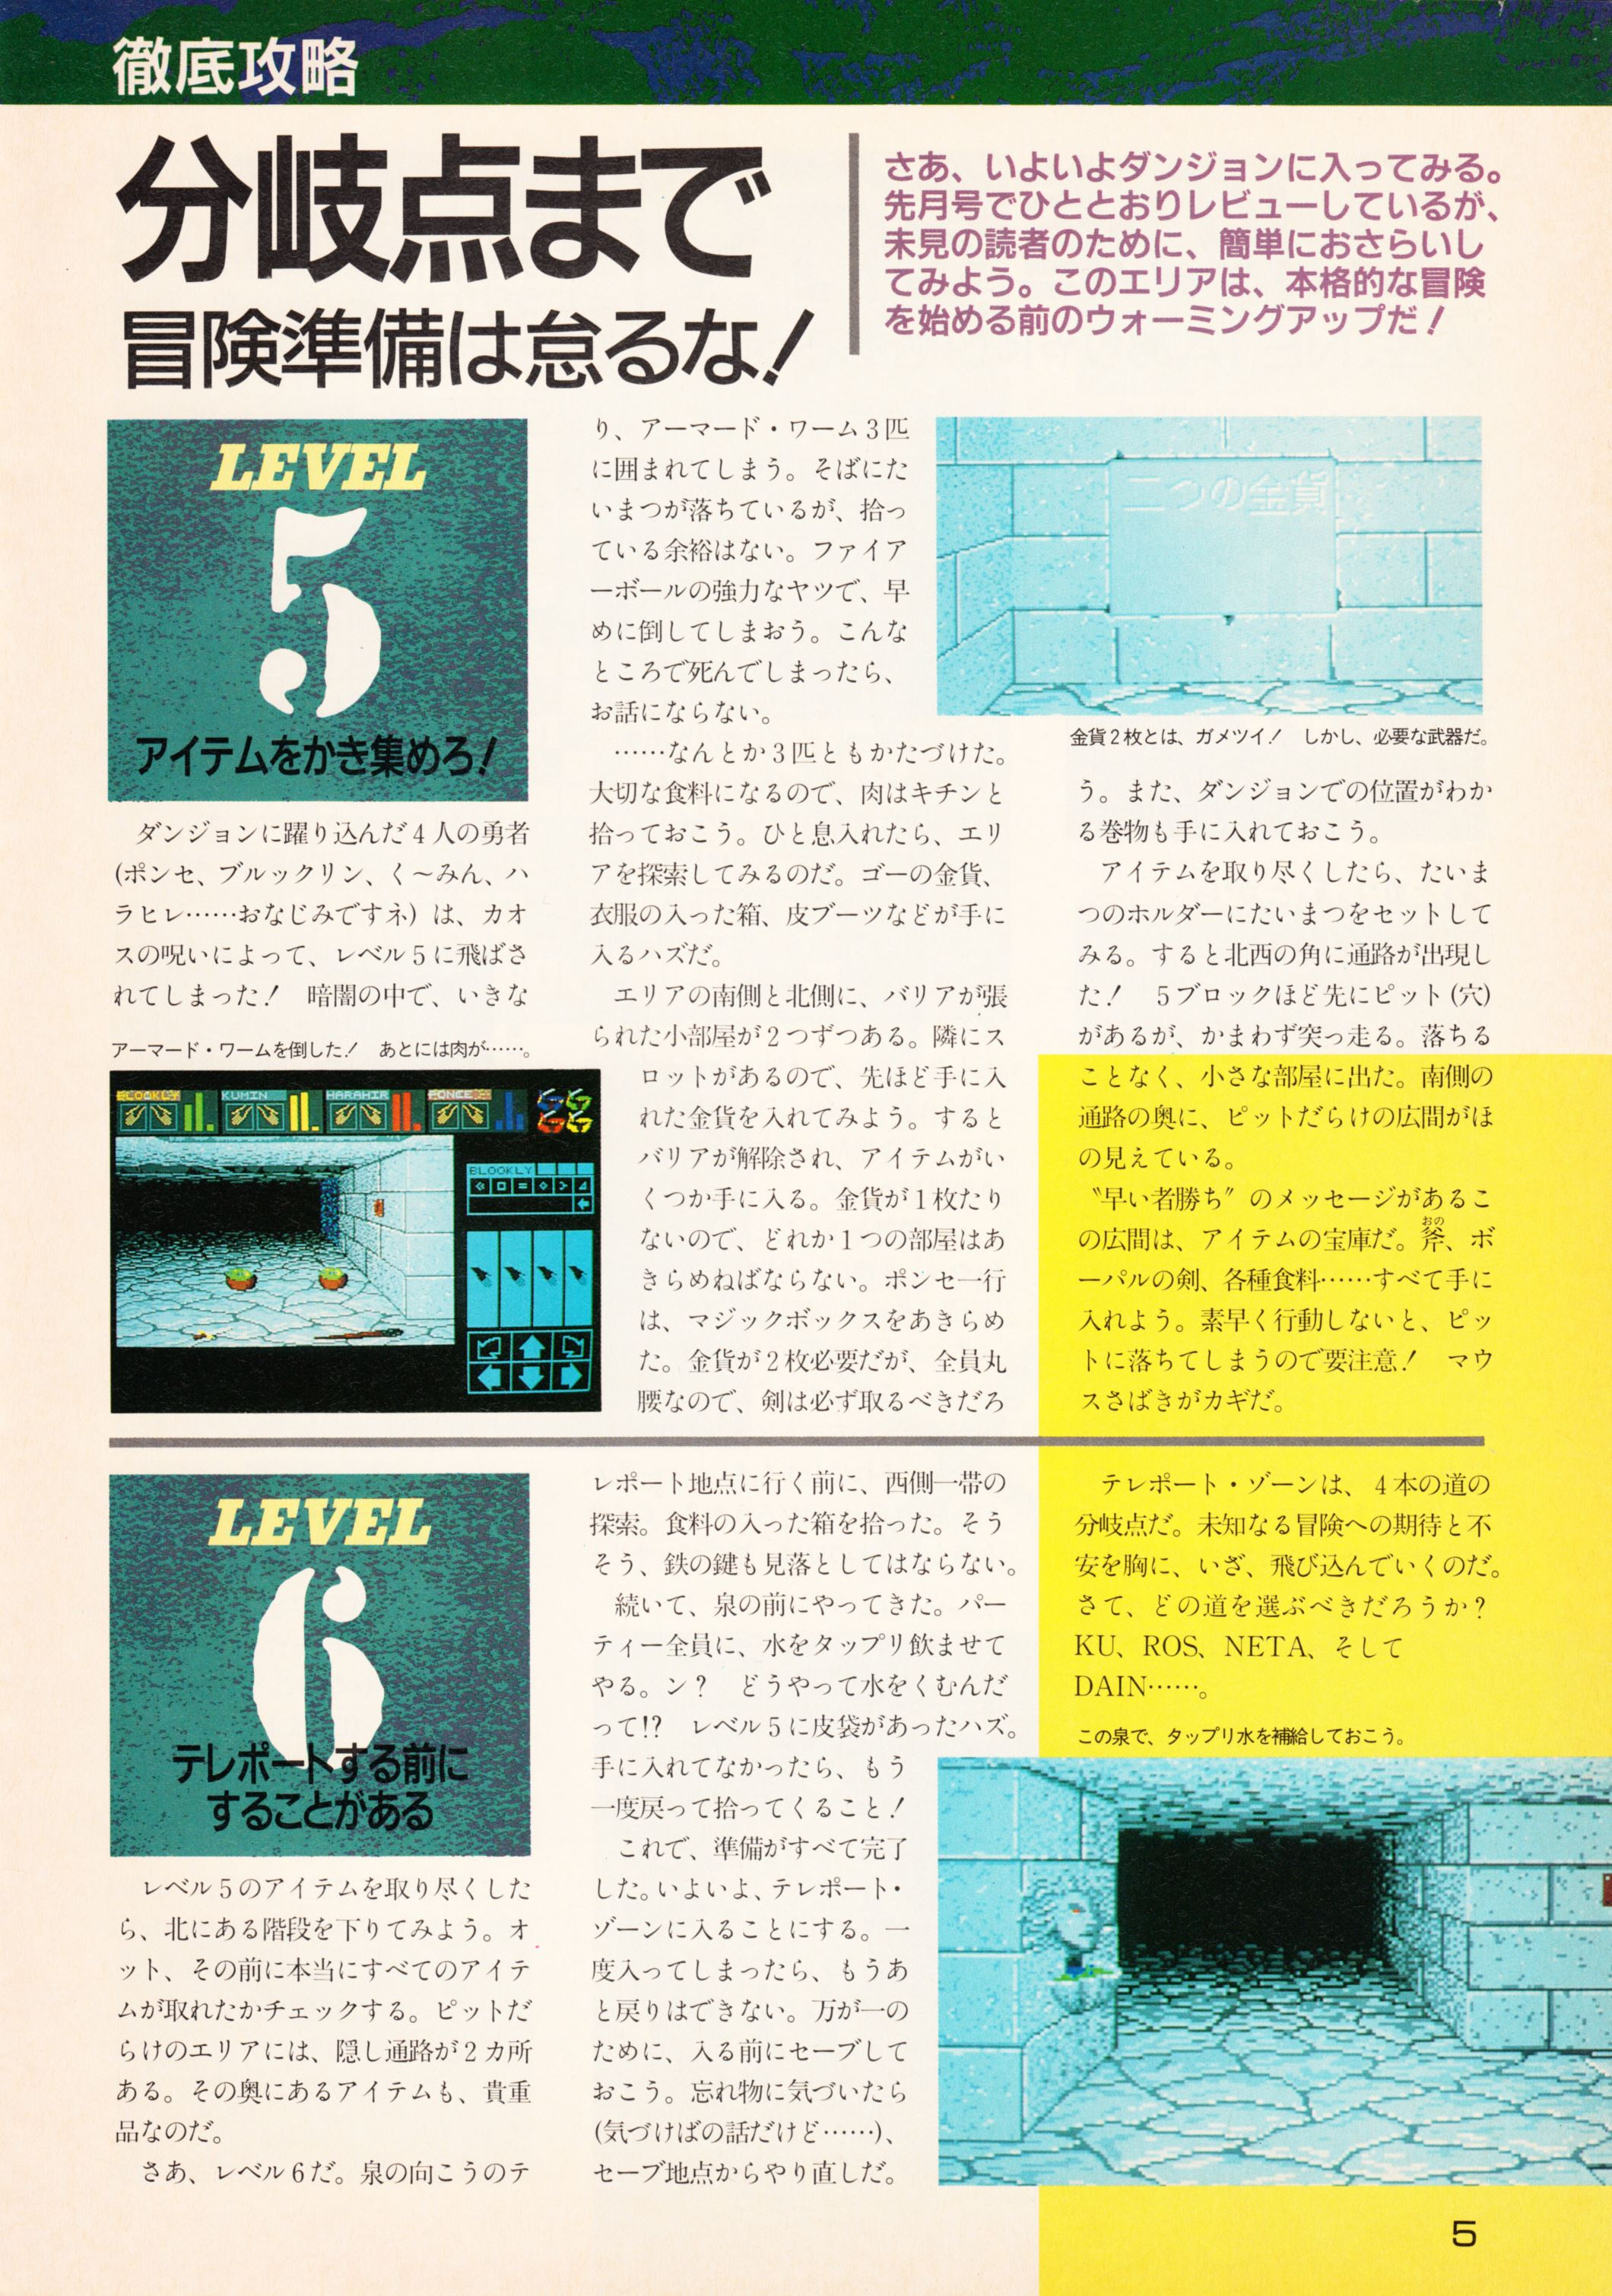 Supplement 1 - Chaos Strikes Back Companion Guide Guide published in Japanese magazine 'Popcom', Vol 9 No 2 01 February 1991, Page 7